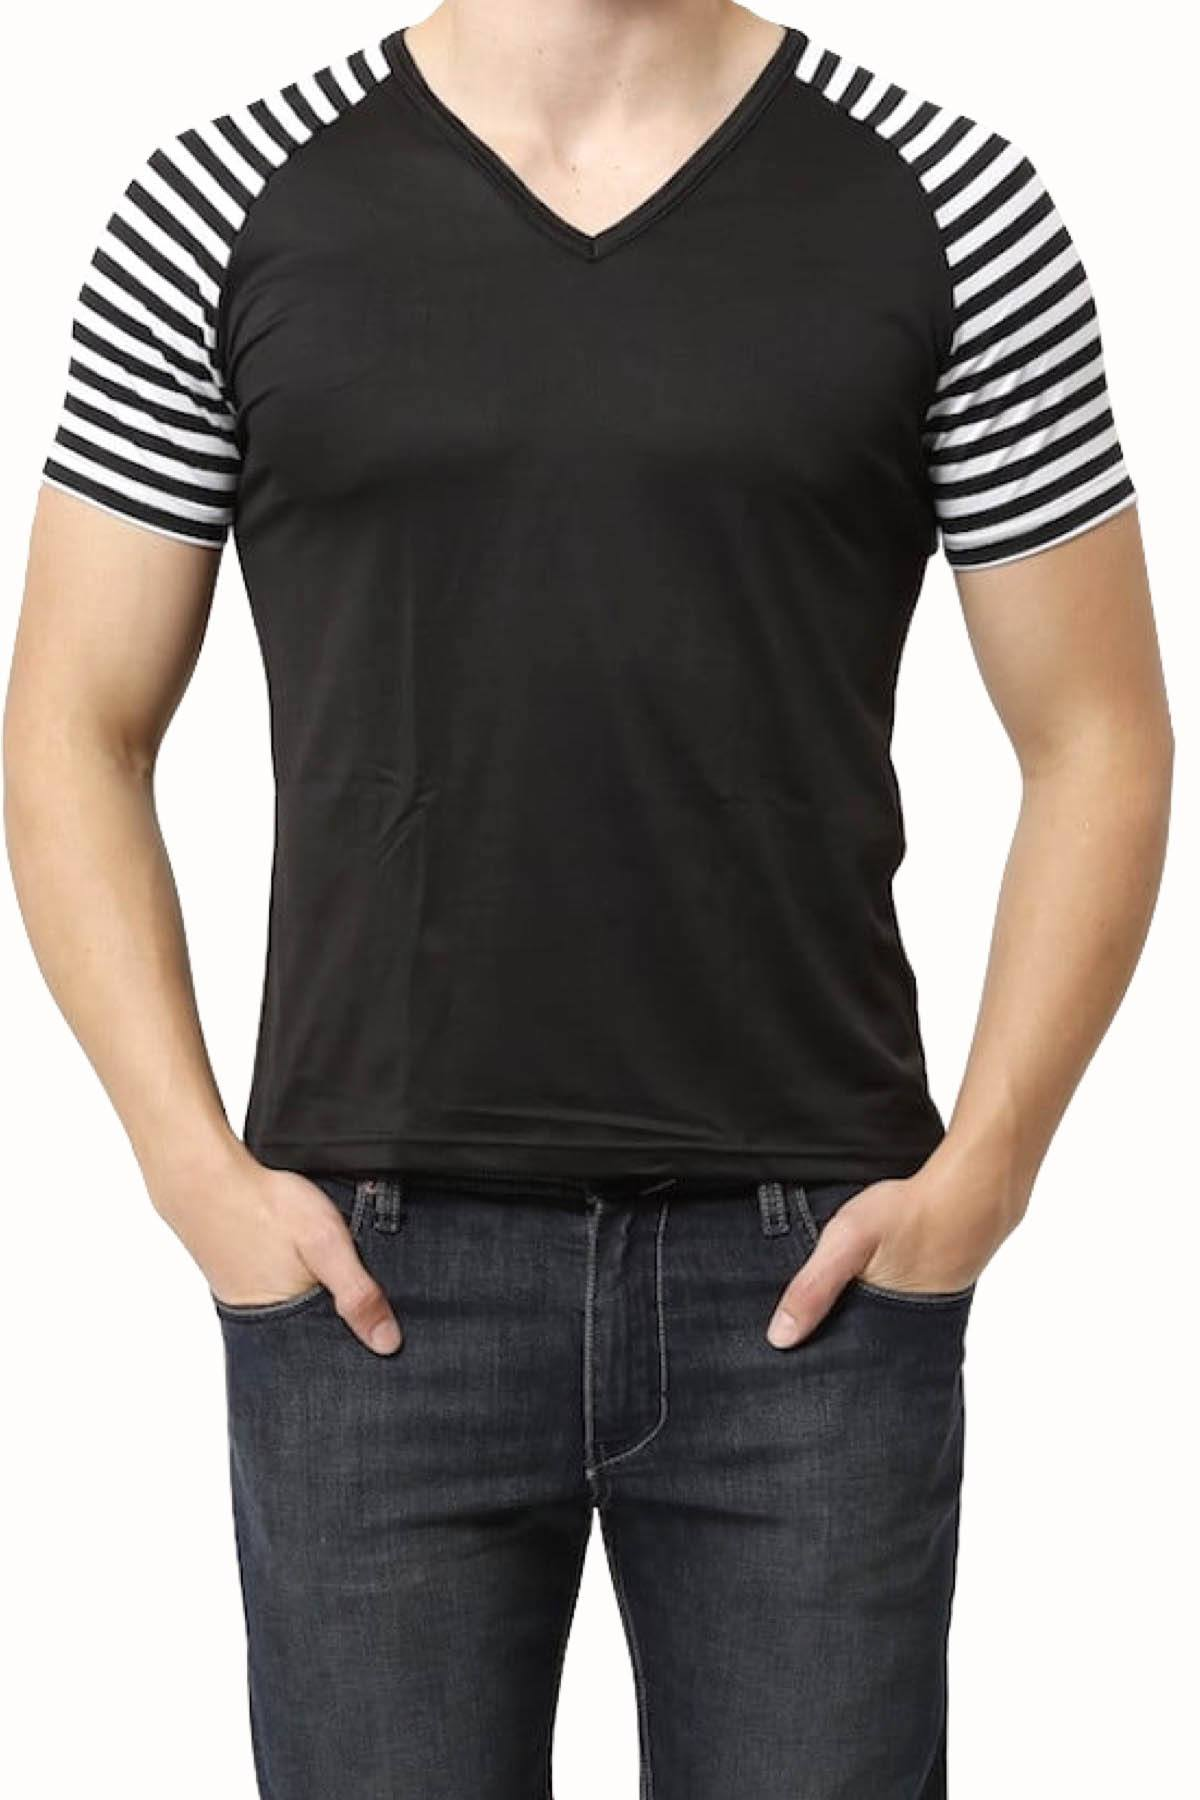 Vuthy Black Striped Raglan Tee